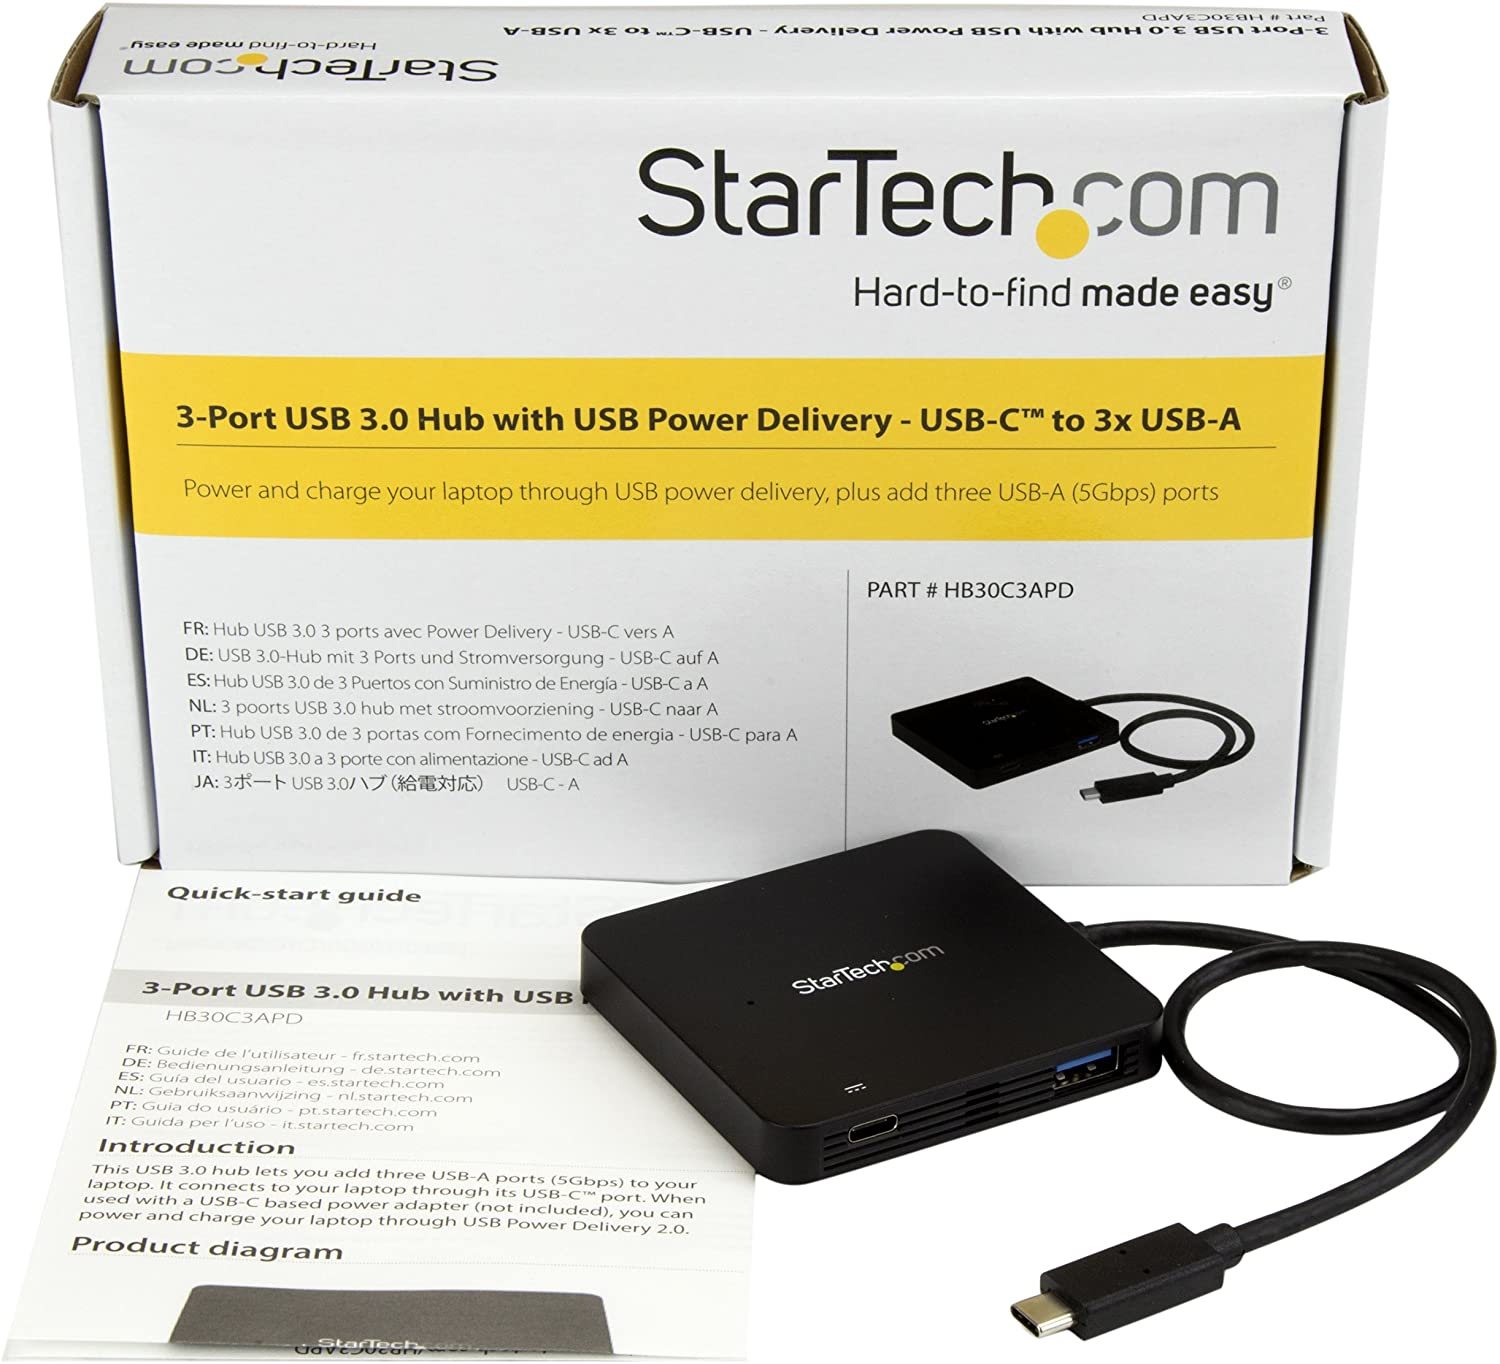 StarTech.com USB C Hub - 3 Port USB C to USB-A (3x) - with Power Delivery (USB PD) - USB-C Hub - Powered USB Hub